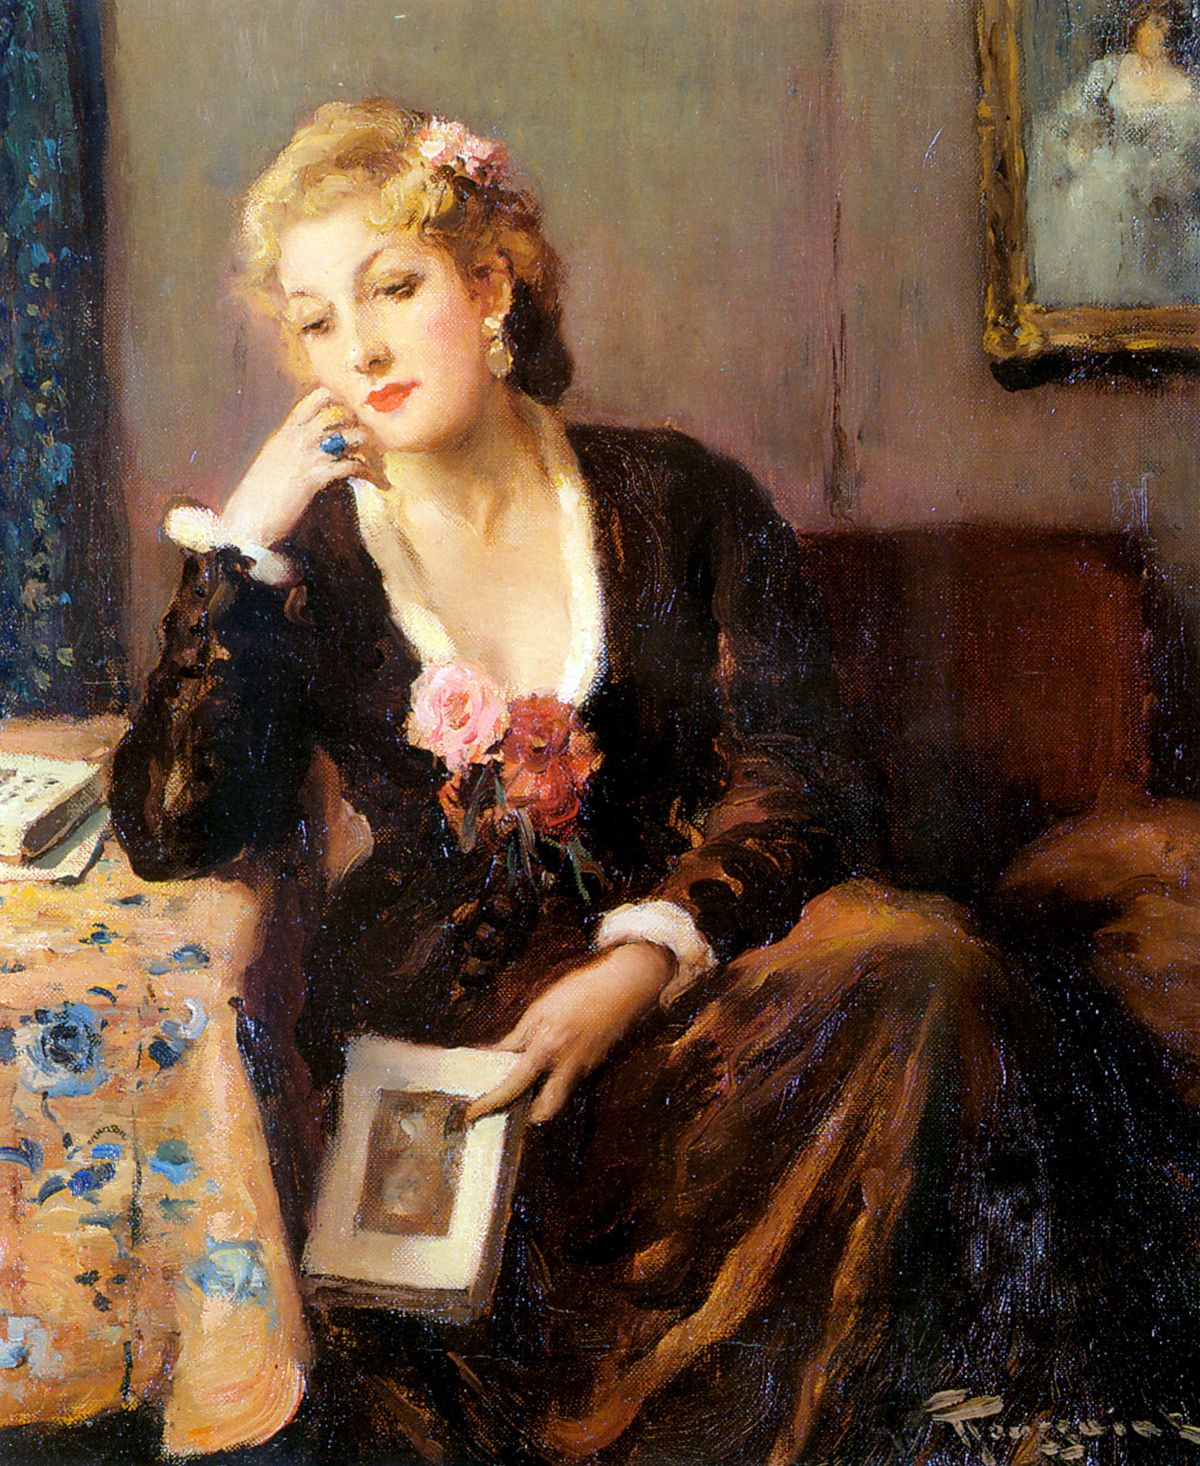 Faraway Thoughts by Fernand Toussaint